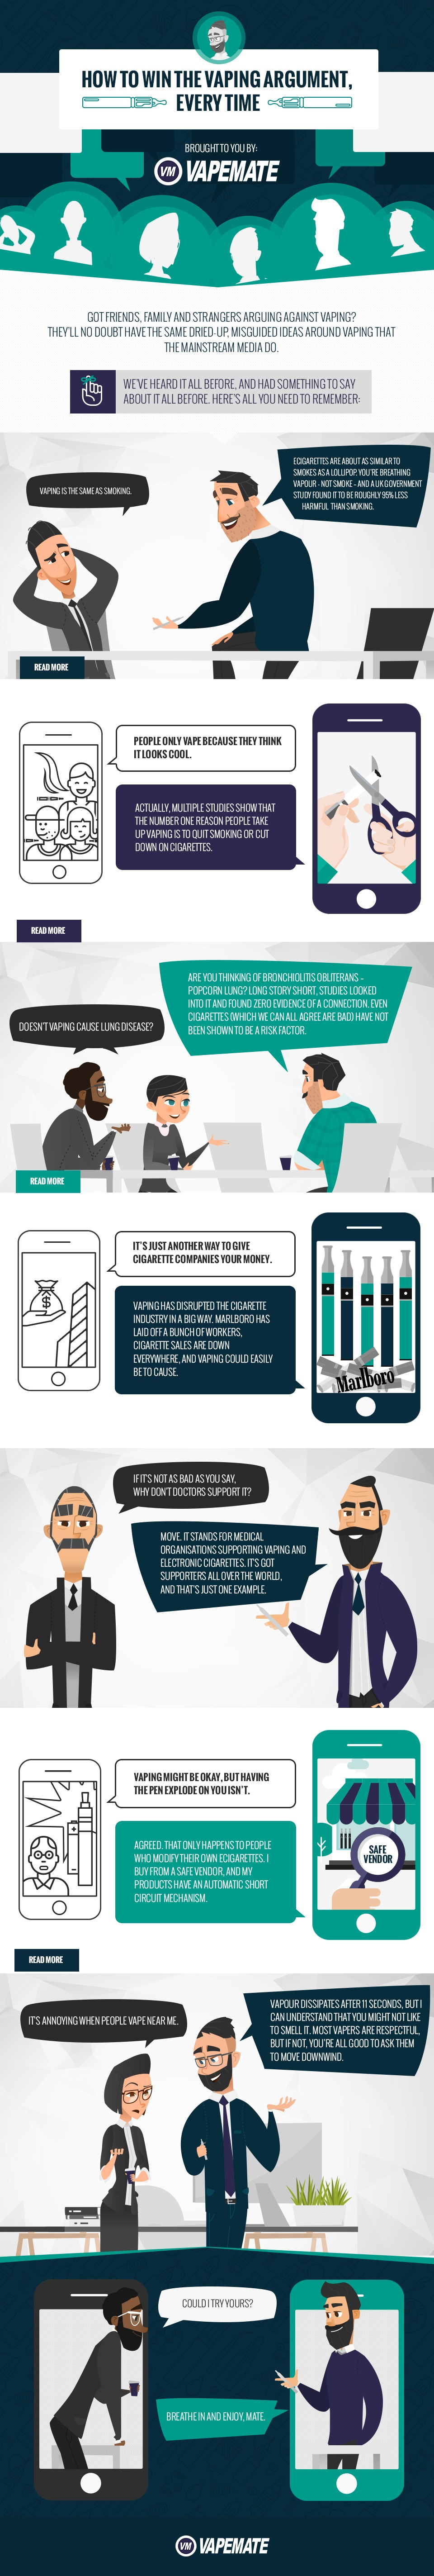 vaping argument infographic